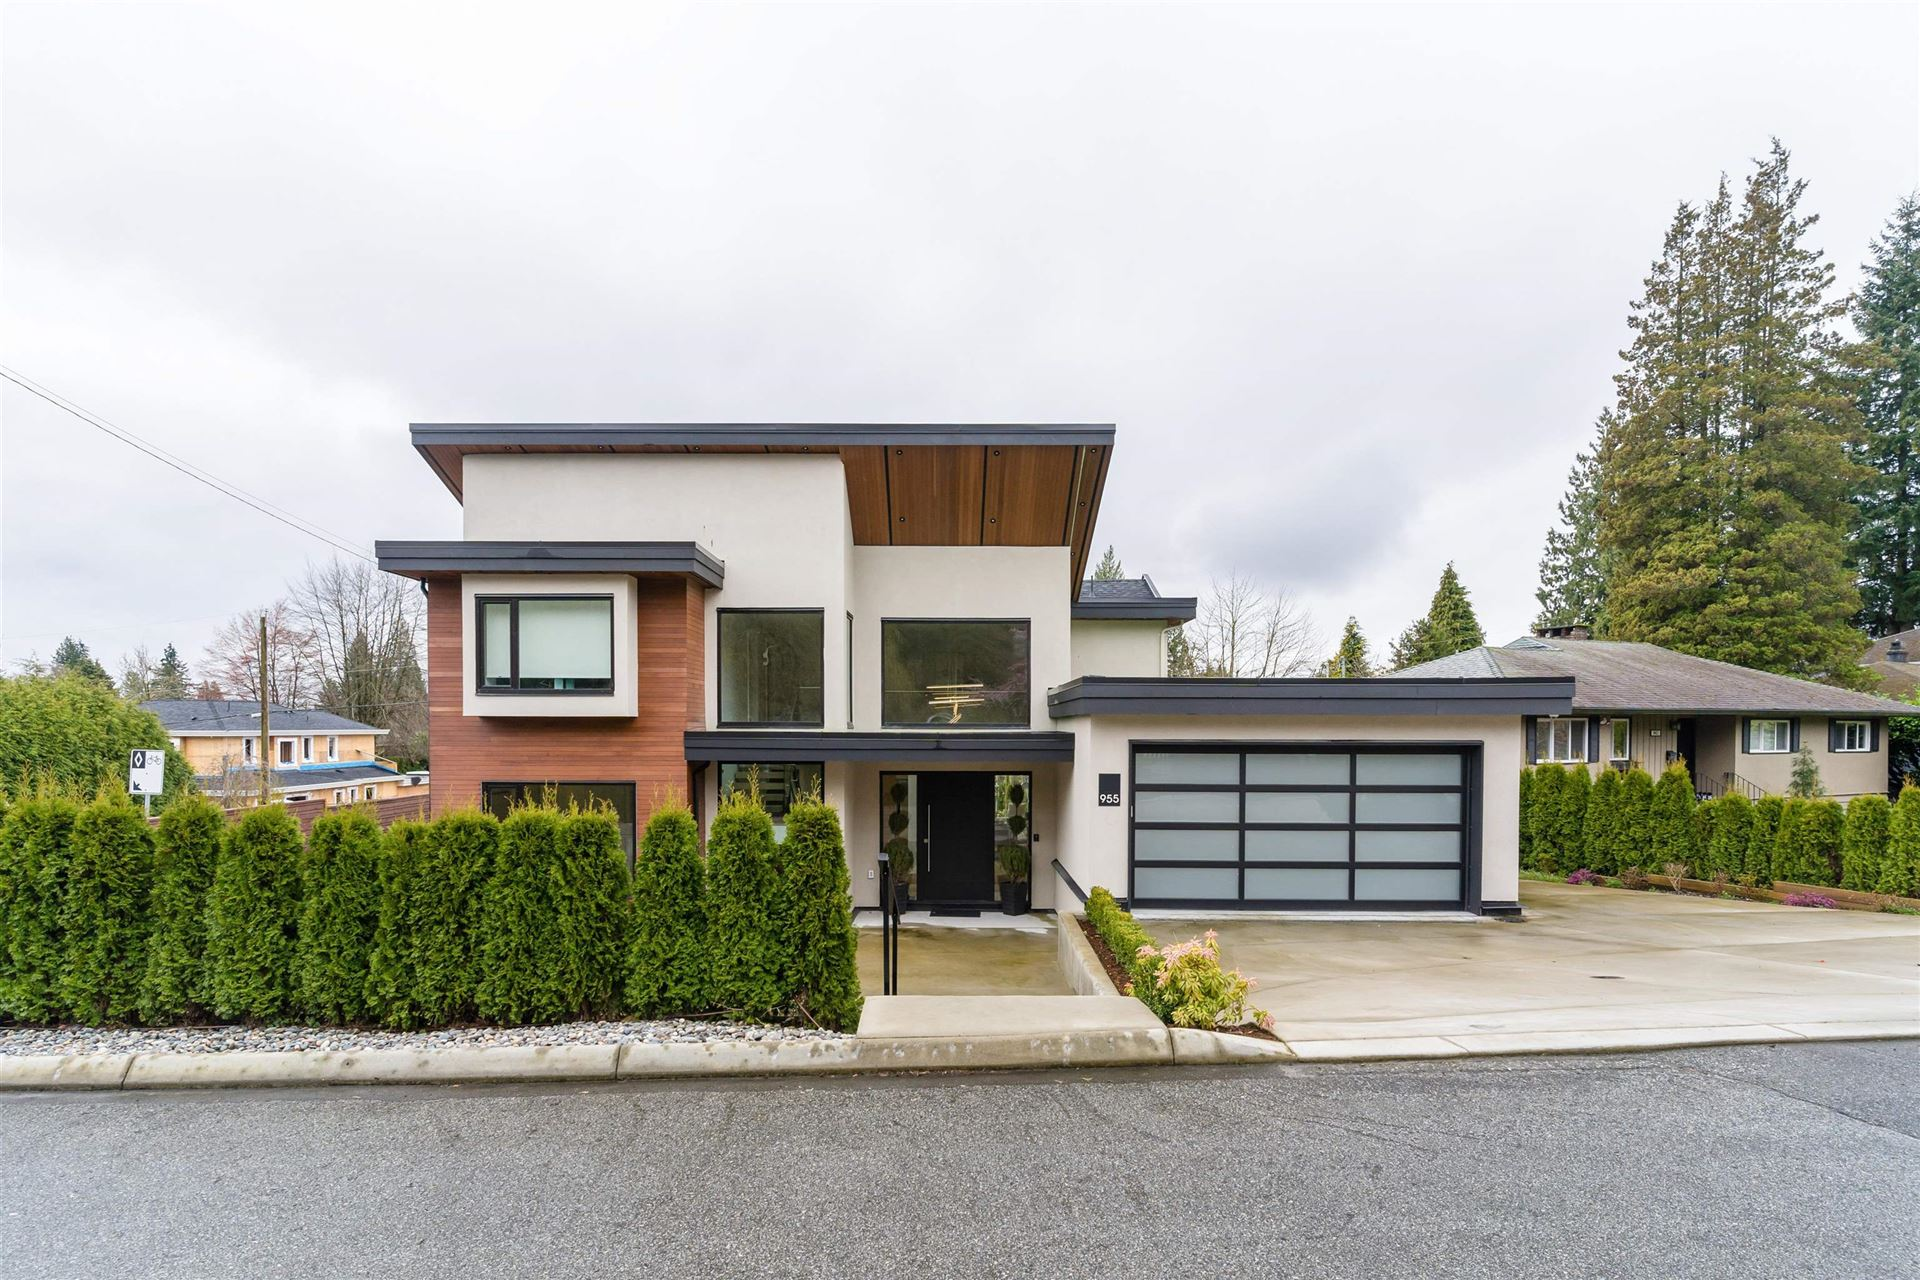 Photo of 955 FOREST HILLS DRIVE, North Vancouver, BC V7R 1N4 (MLS # R2620254)